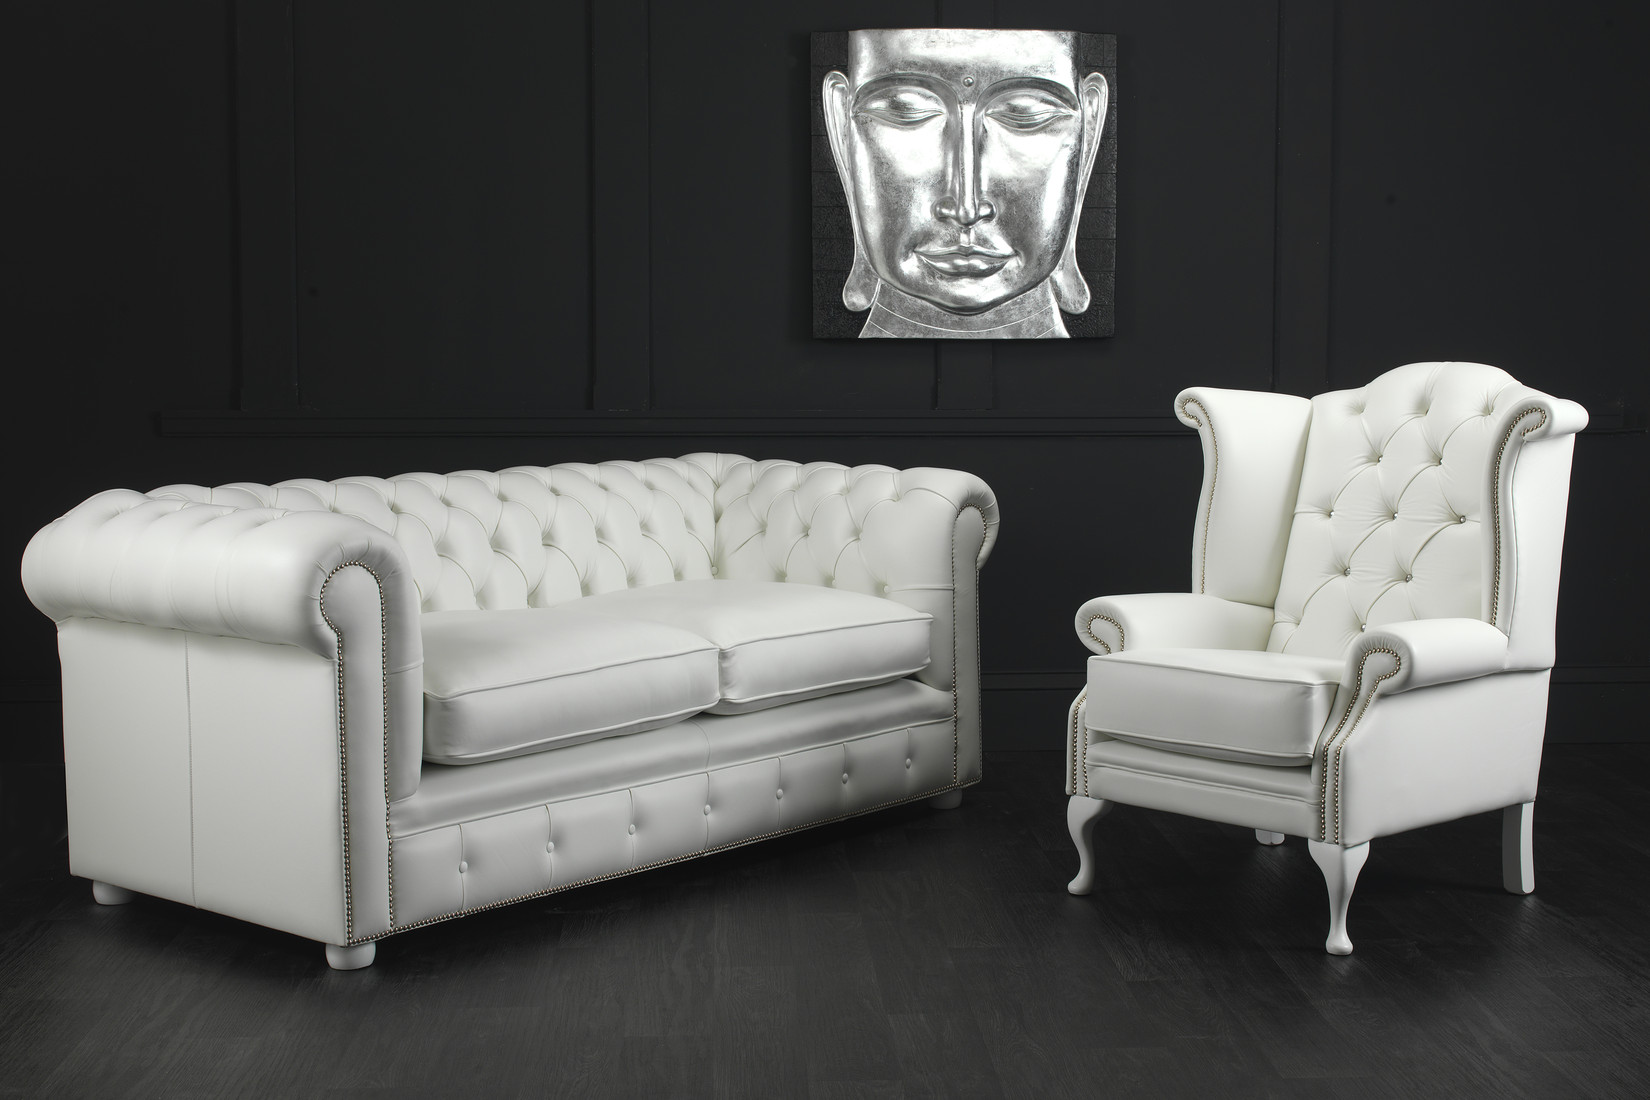 Chatsworth Chesterfield 2 Seater Chatsworth Collection